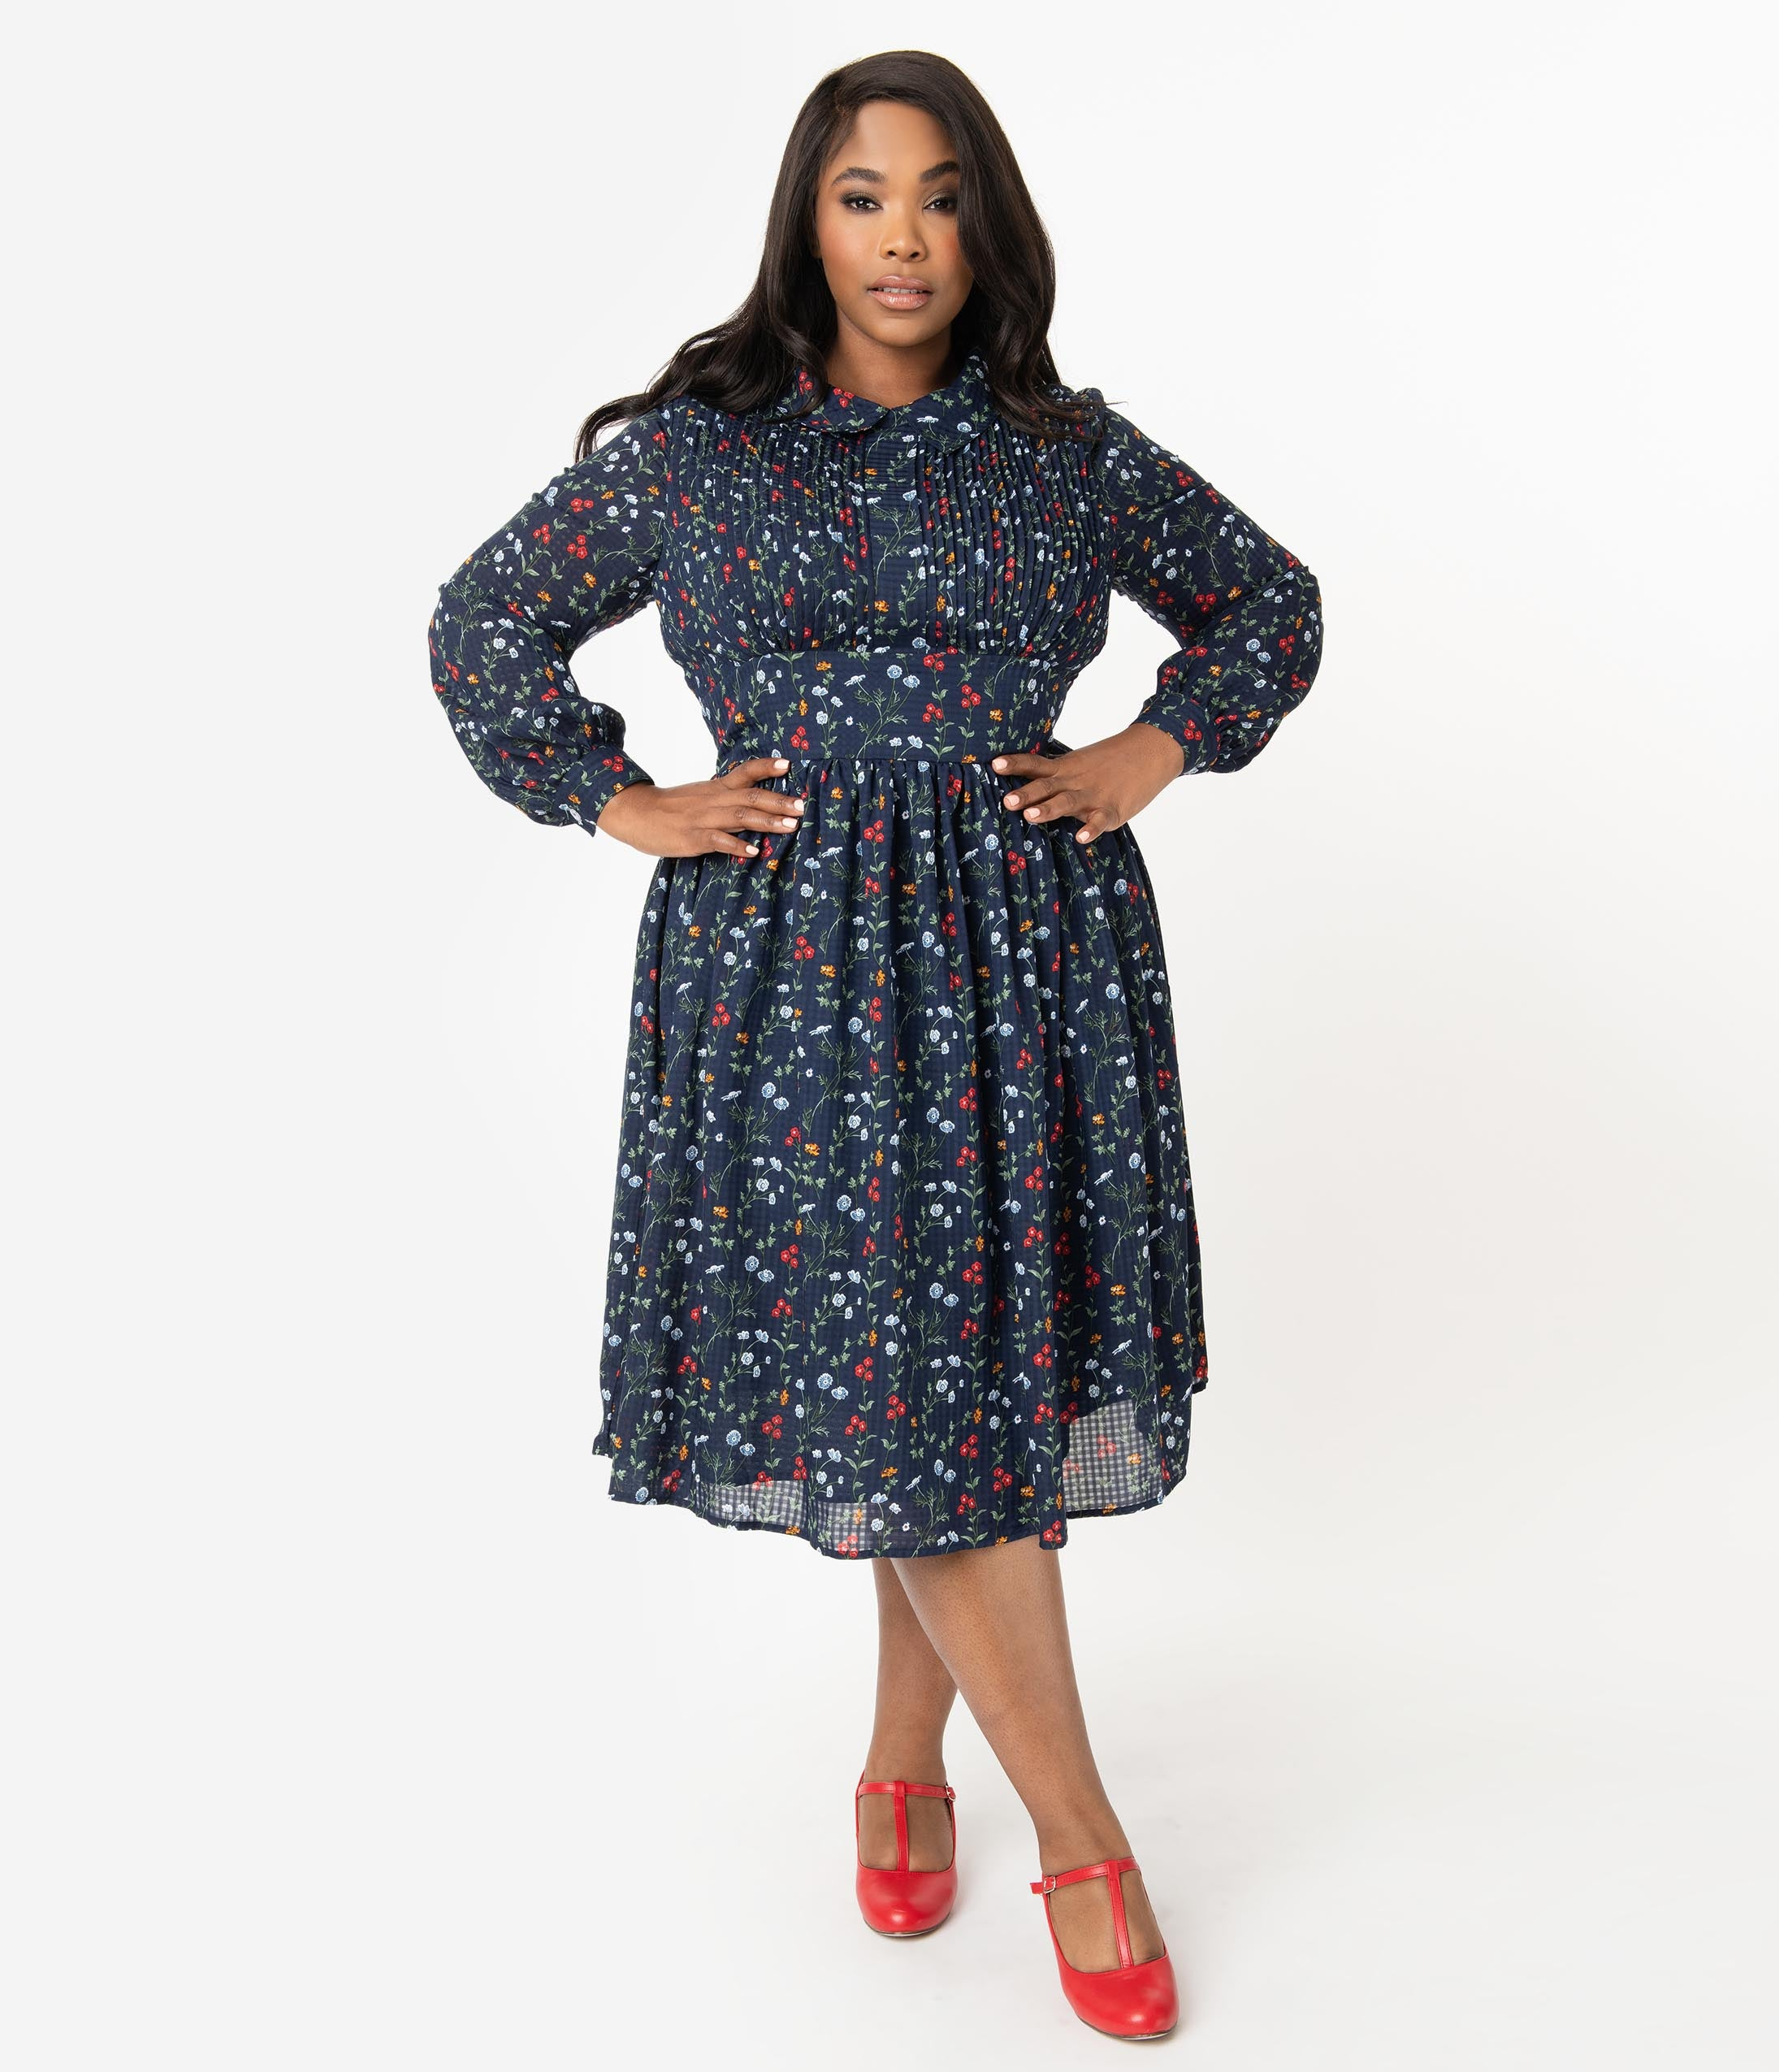 1950s Plus Size Dresses, Swing Dresses Unique Vintage Plus Size 1940S Style Navy  Multicolor Floral Deirdre Shirt Dress $118.00 AT vintagedancer.com